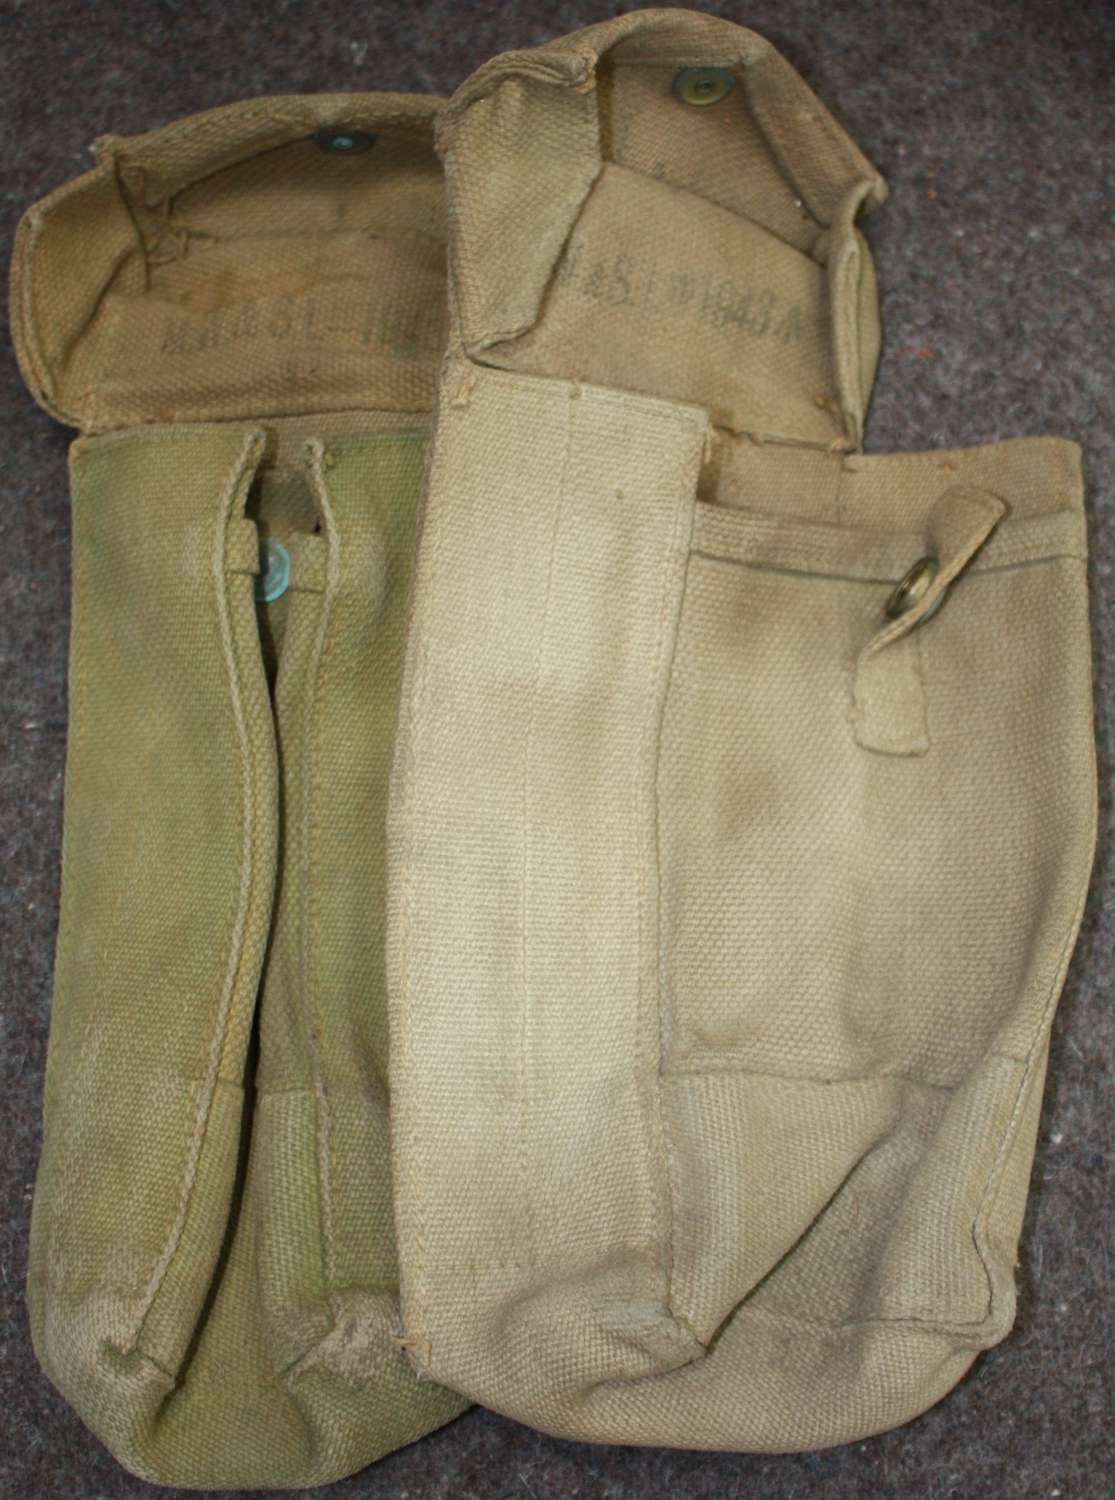 A PAIR OF MAKER MATCHING 1943 DATED 27 PATTERN AMMO POUCHES